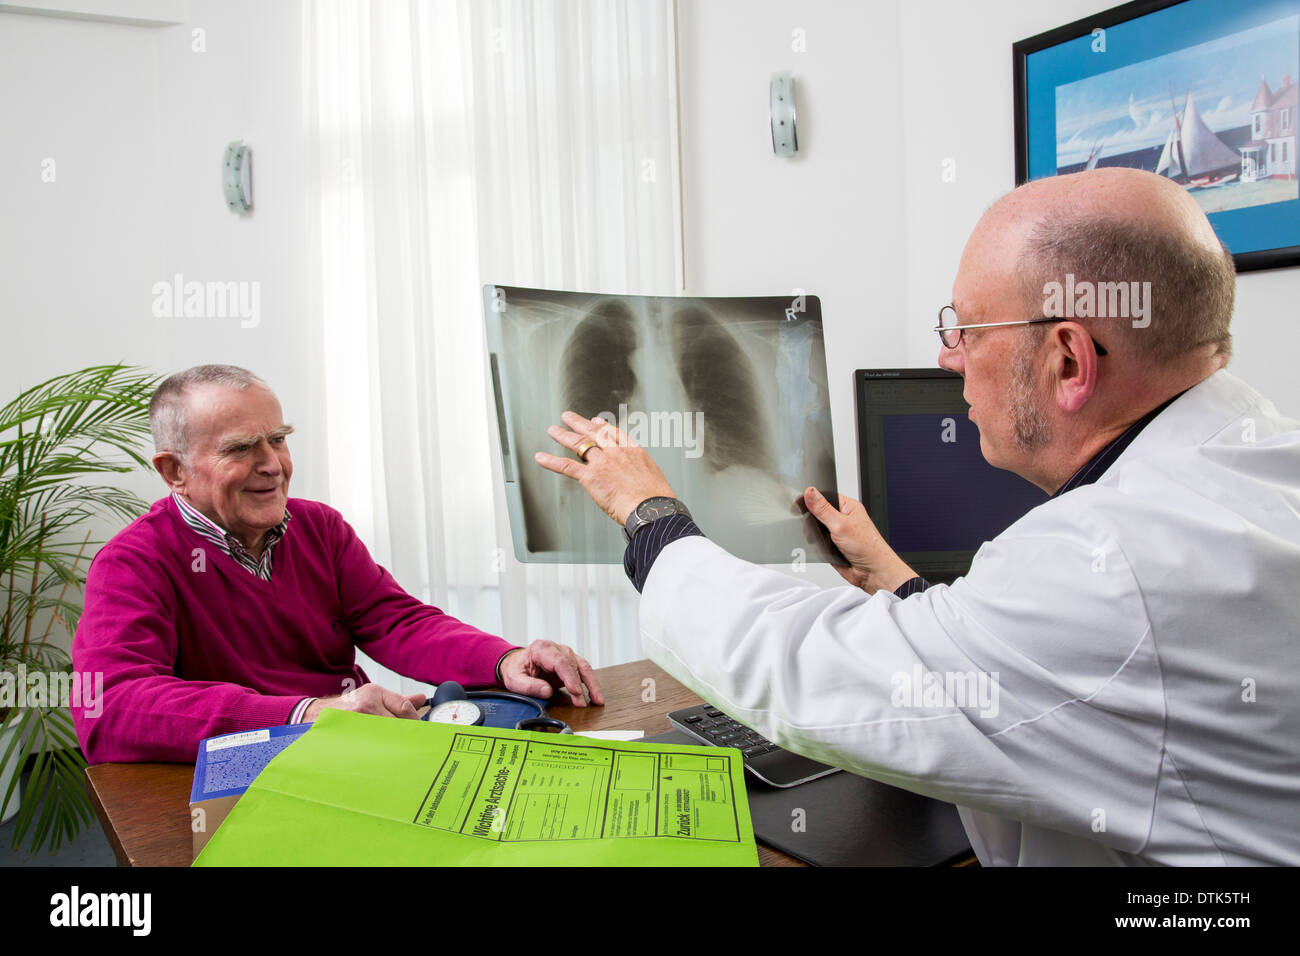 Doctor discuss with a patient the result of an X-ray. - Stock Image